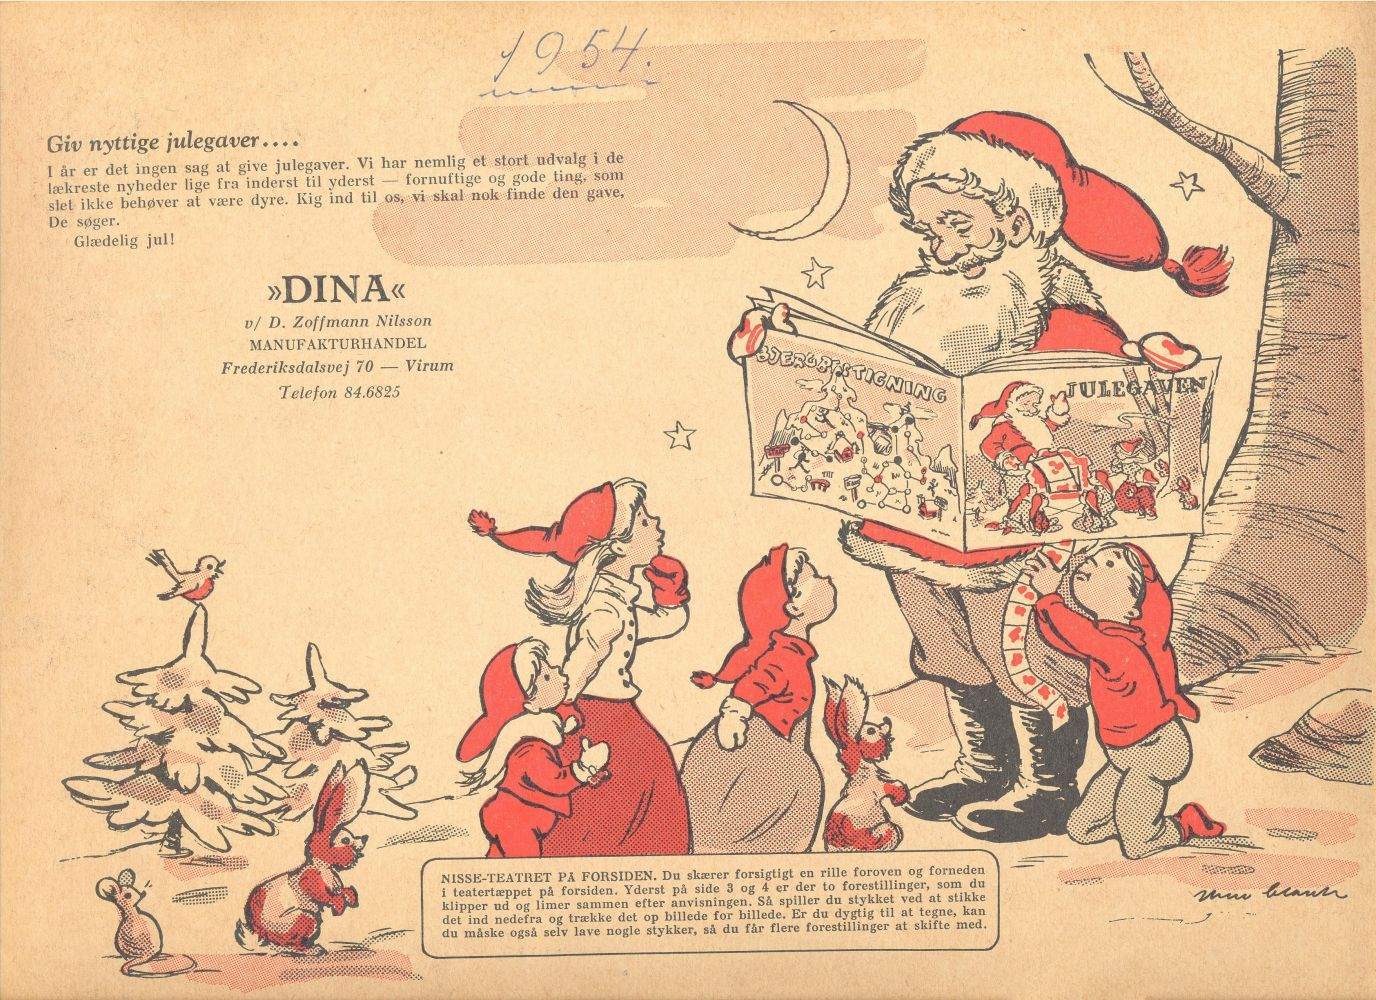 CHRISTMAS GIFT CATALOGUE OR GUIDE 1954 DANISH